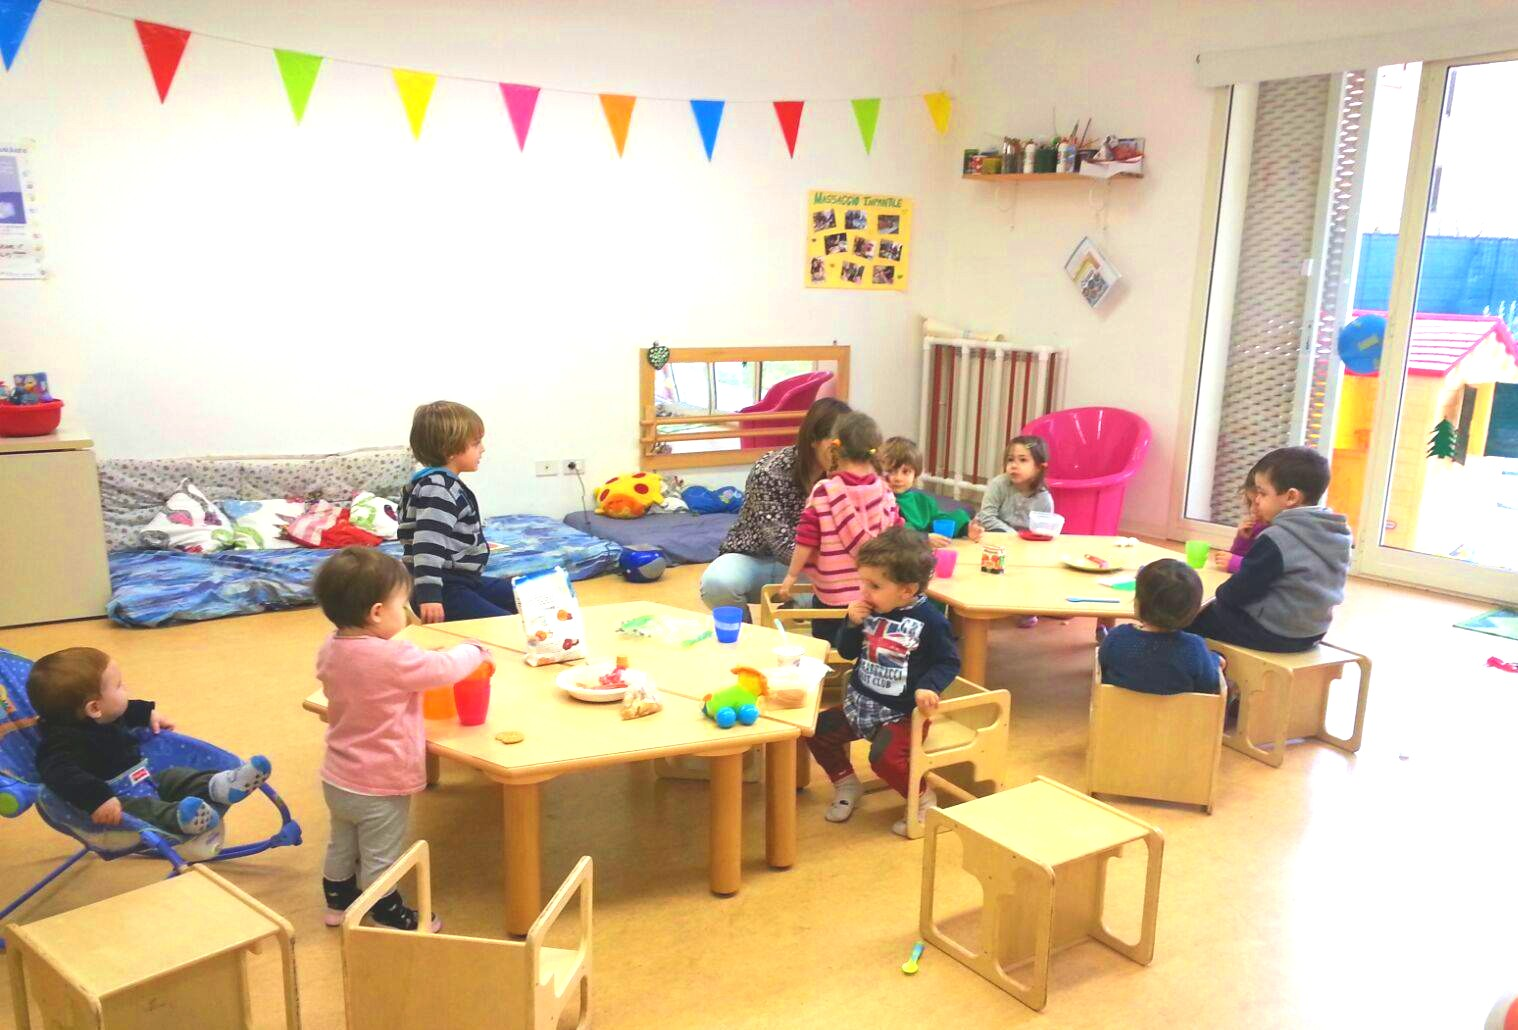 L'alveare coworking with childcare in Florence, Italy.